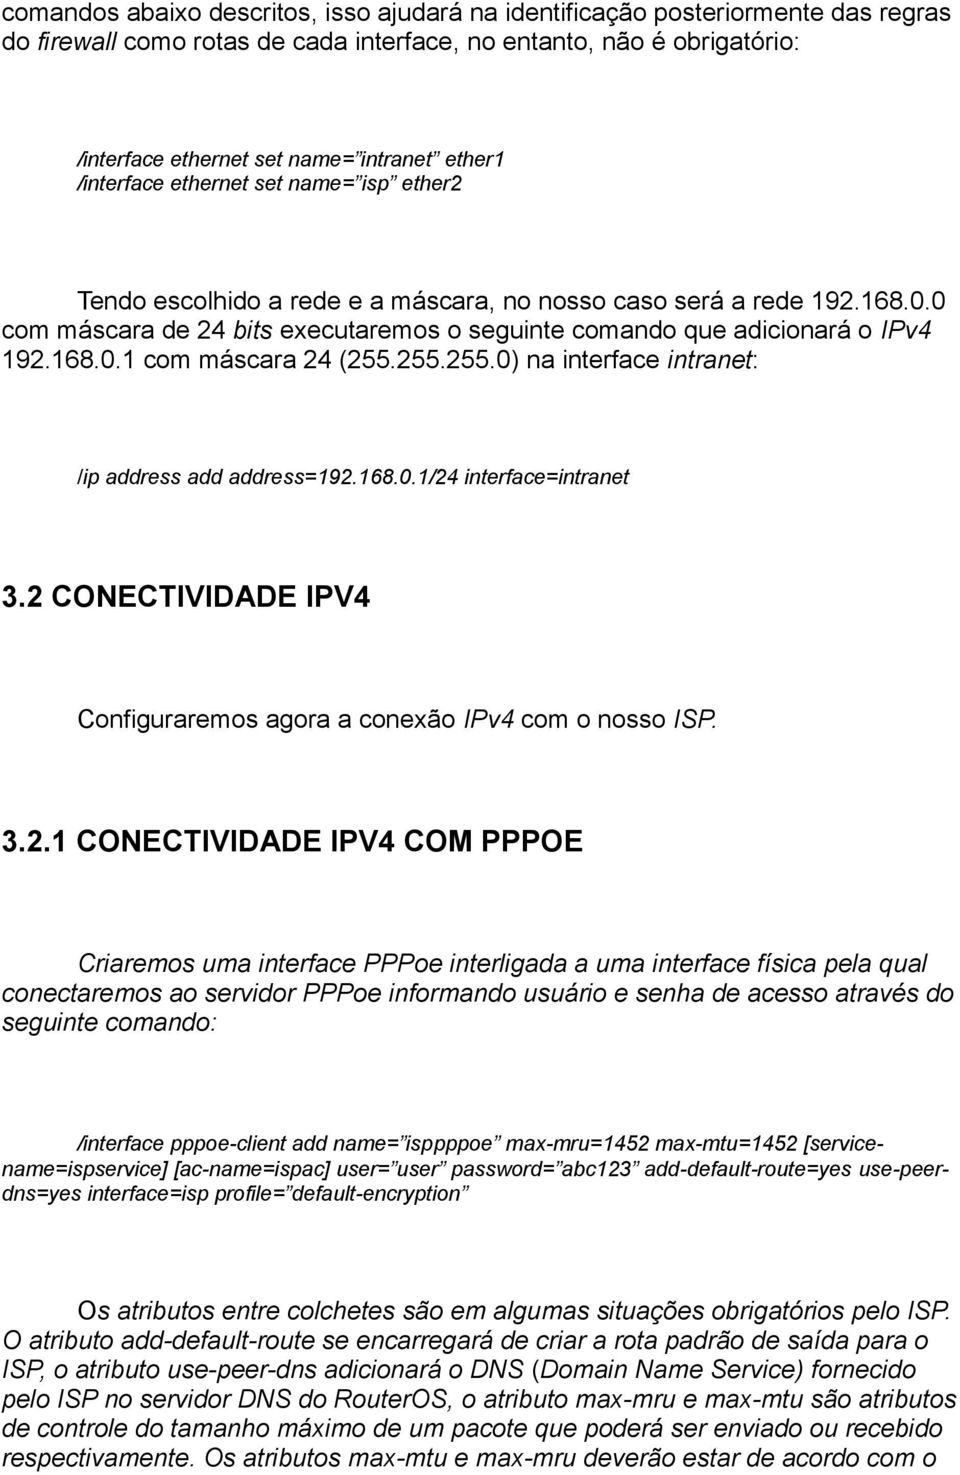 0 com máscara de 24 bits executaremos o seguinte comando que adicionará o IPv4 192.168.0.1 com máscara 24 (255.255.255.0) na interface intranet: /ip address add address=192.168.0.1/24 interface=intranet 3.